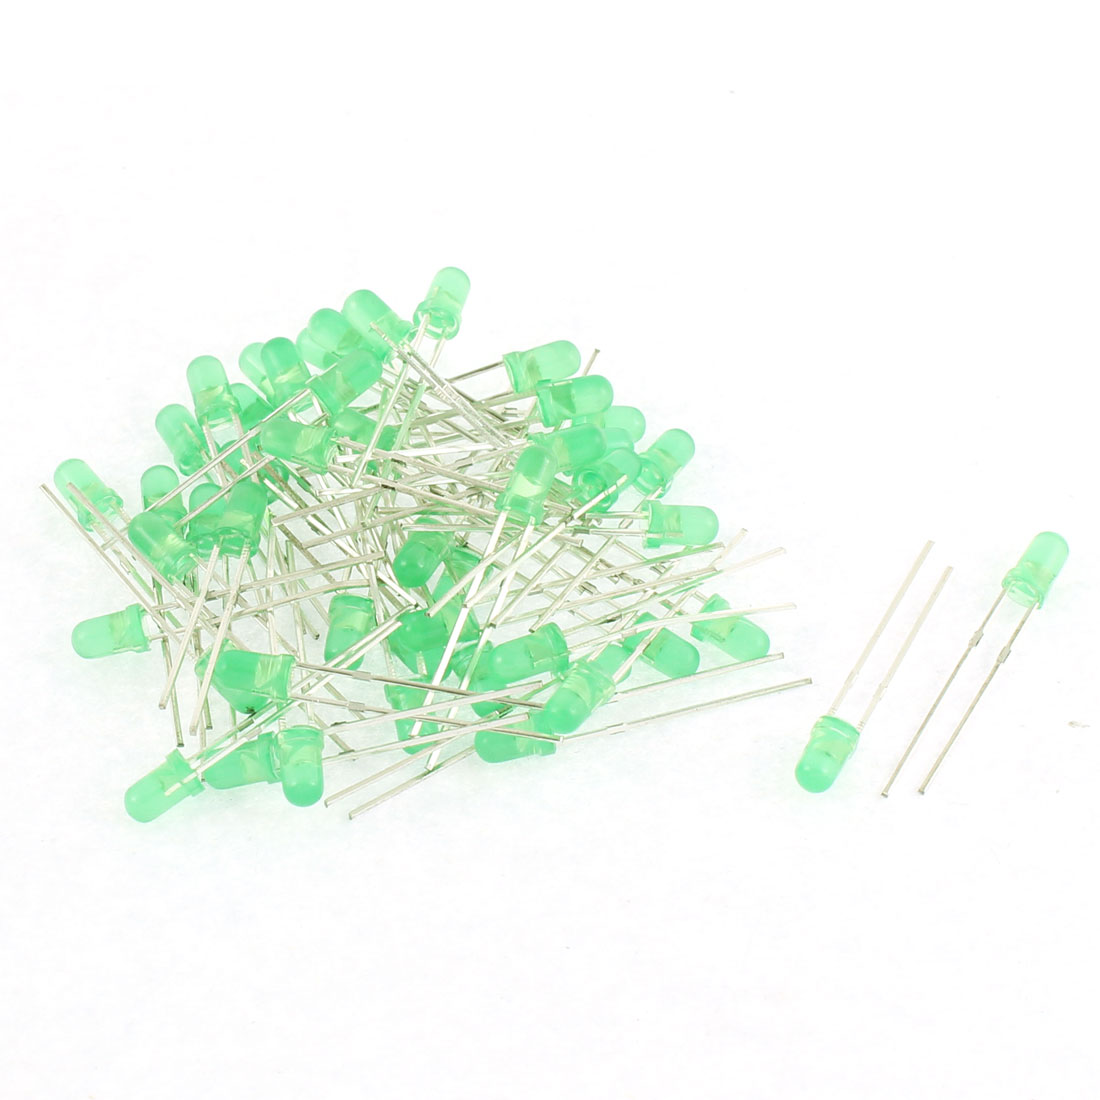 50pcs Green Light Diffused Emitting Diodes DIY LEDs Emitter Component